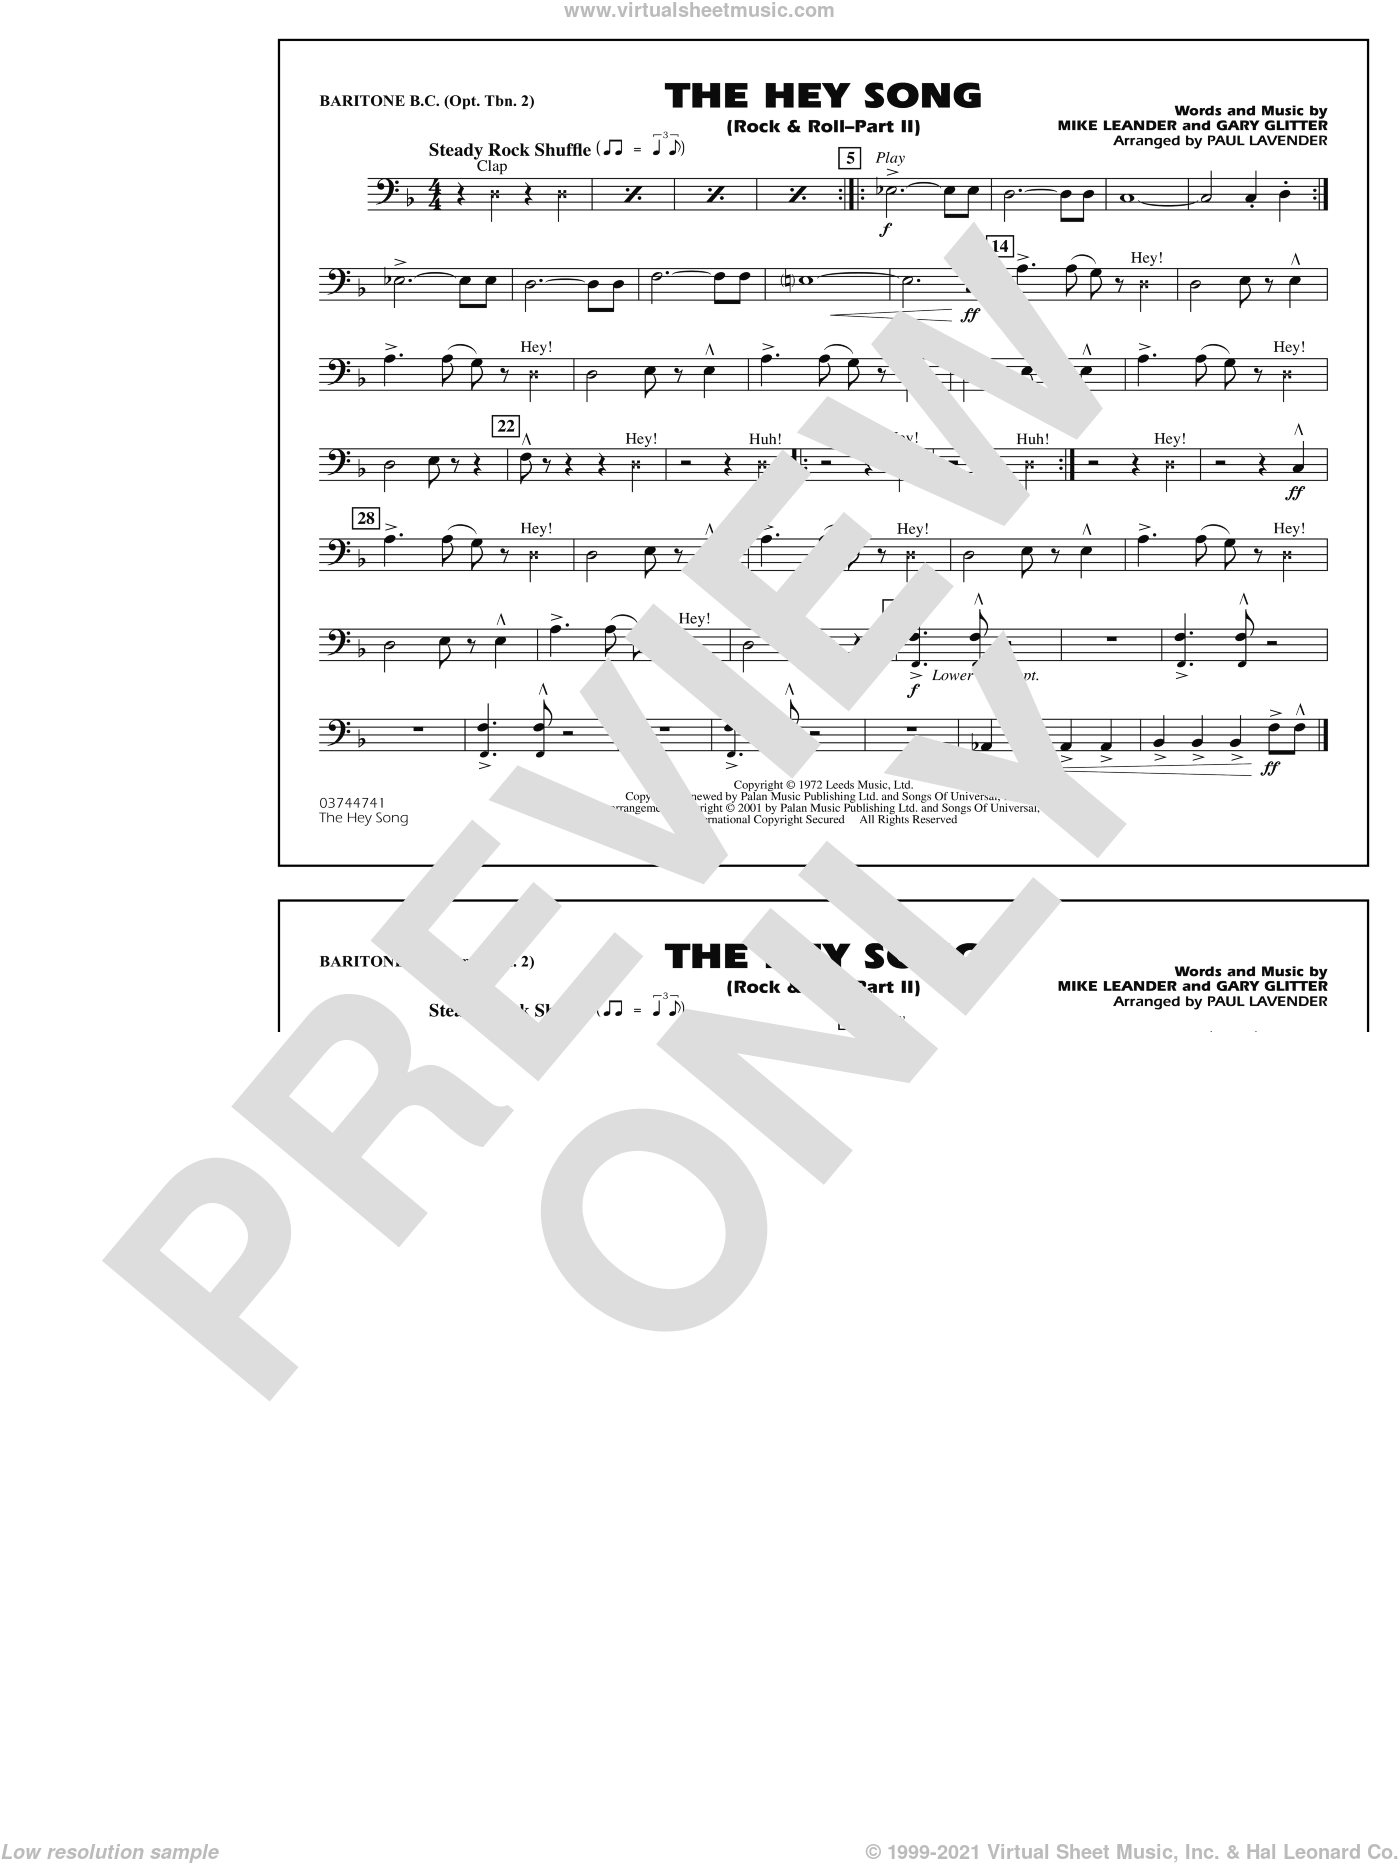 Rock and Roll, part ii (the hey song) sheet music for marching band (baritone b.c., opt. tbn. 2) by Mike Leander